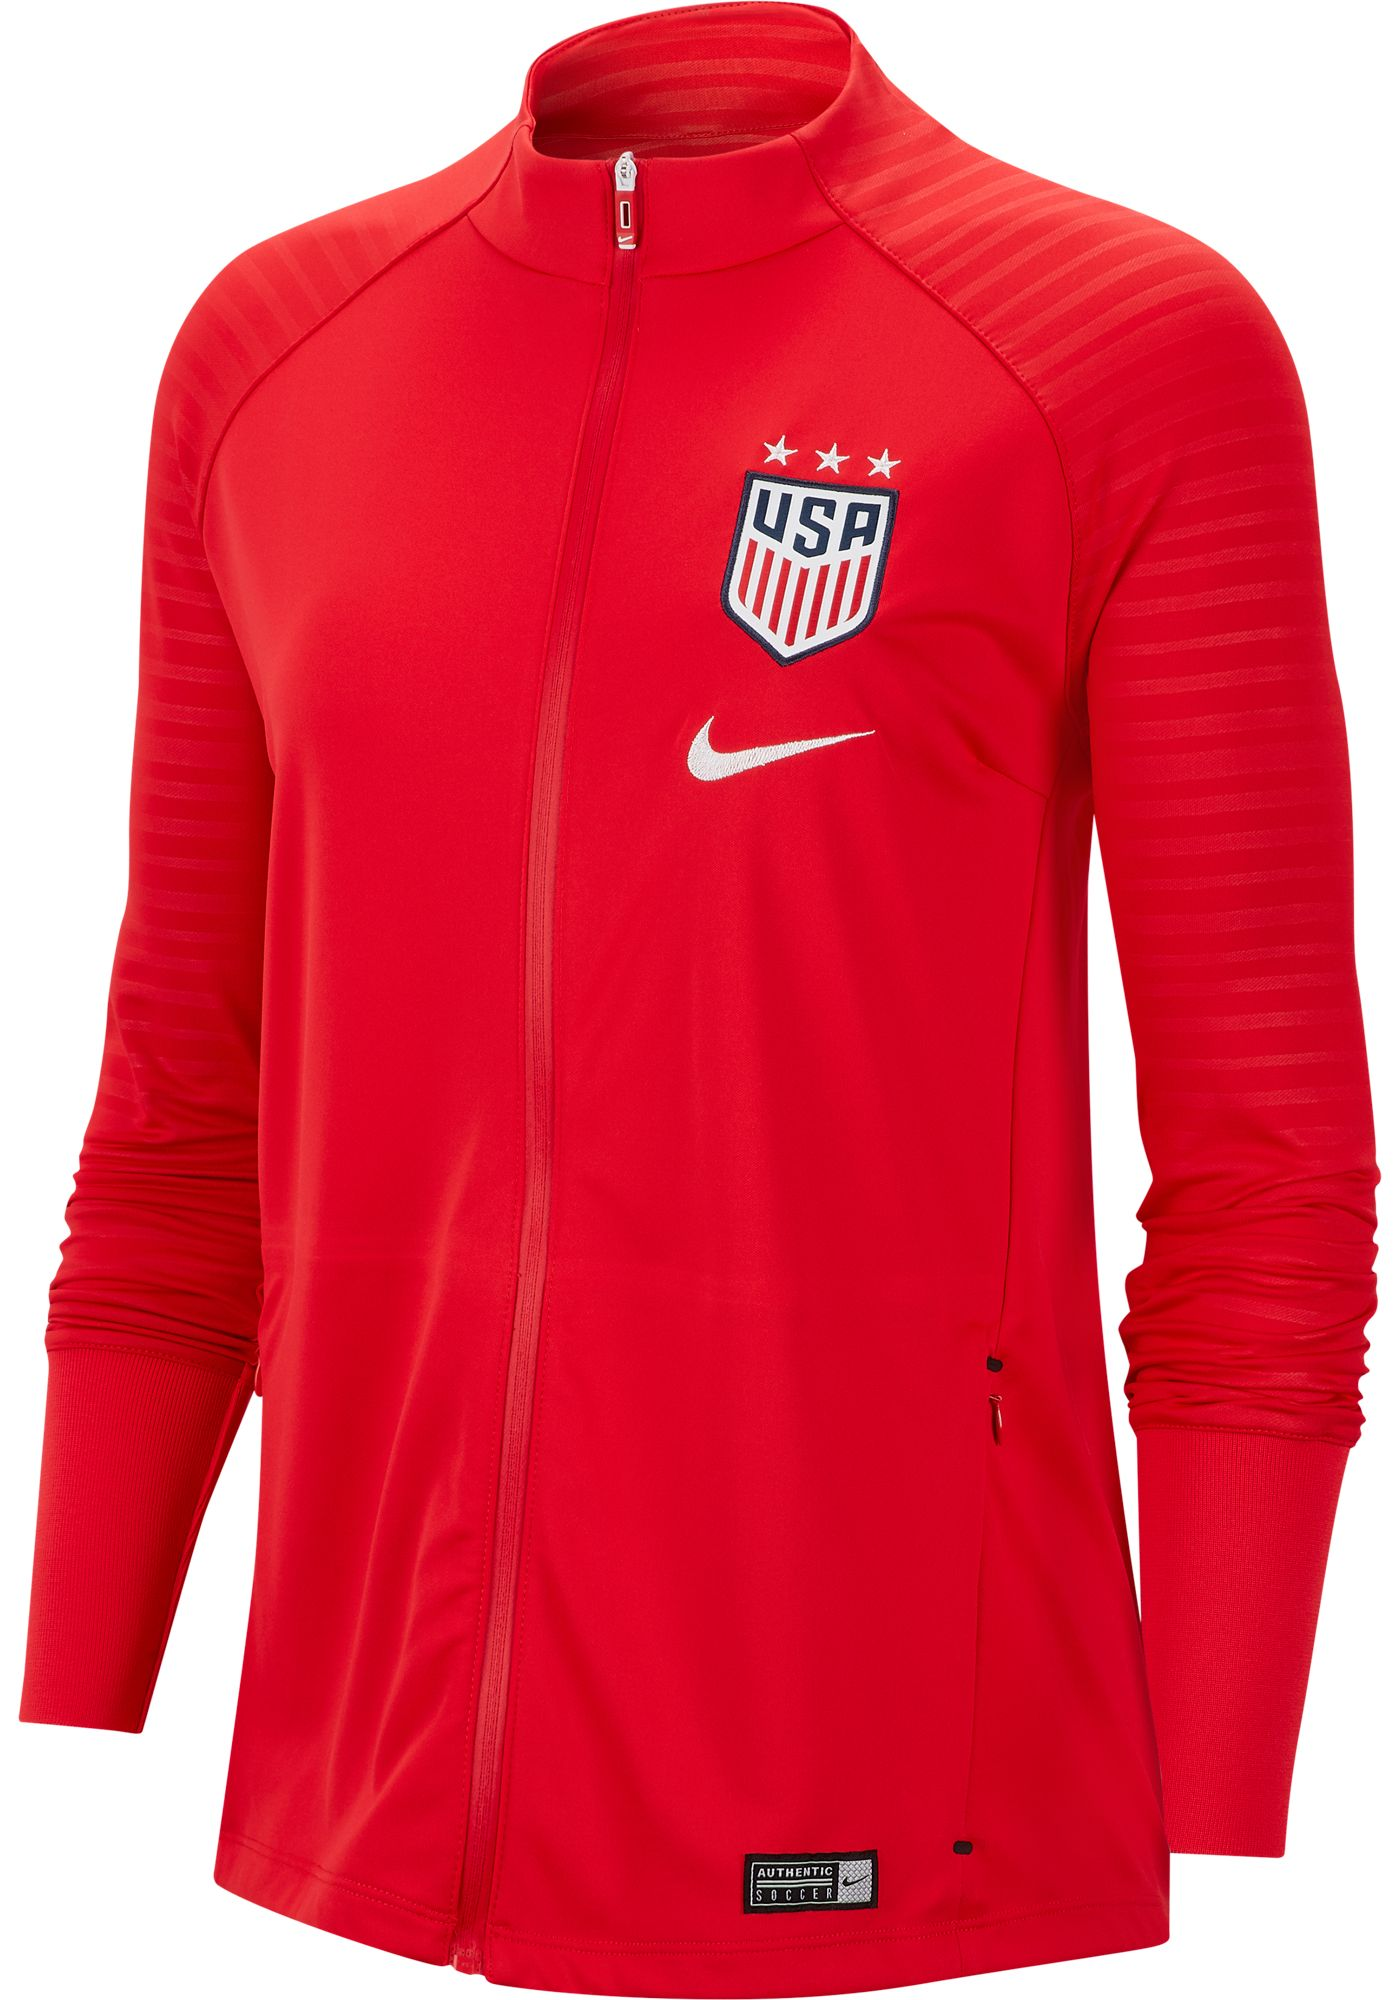 Nike Women's 2019 FIFA Women's World Cup USA Soccer Anthem Red Jacket